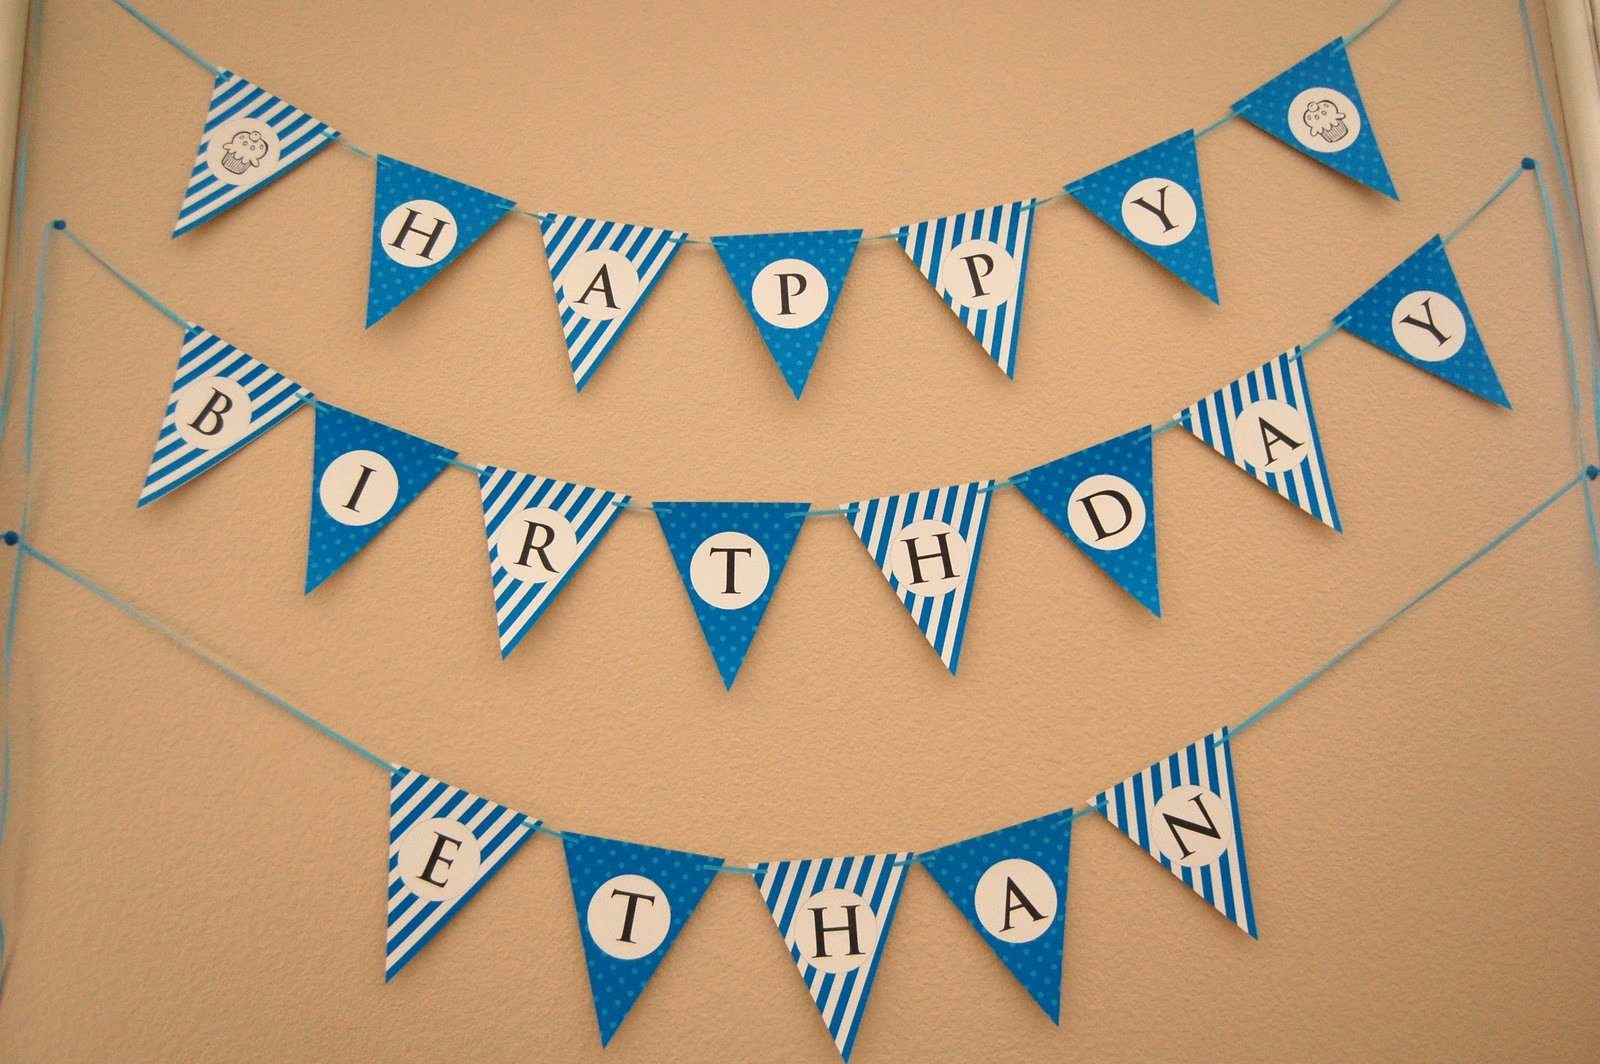 Birthday Banner Template Free Unique Flipawoo Invitation and Party Designs Happy Birthday Bunting Banner Free Printable